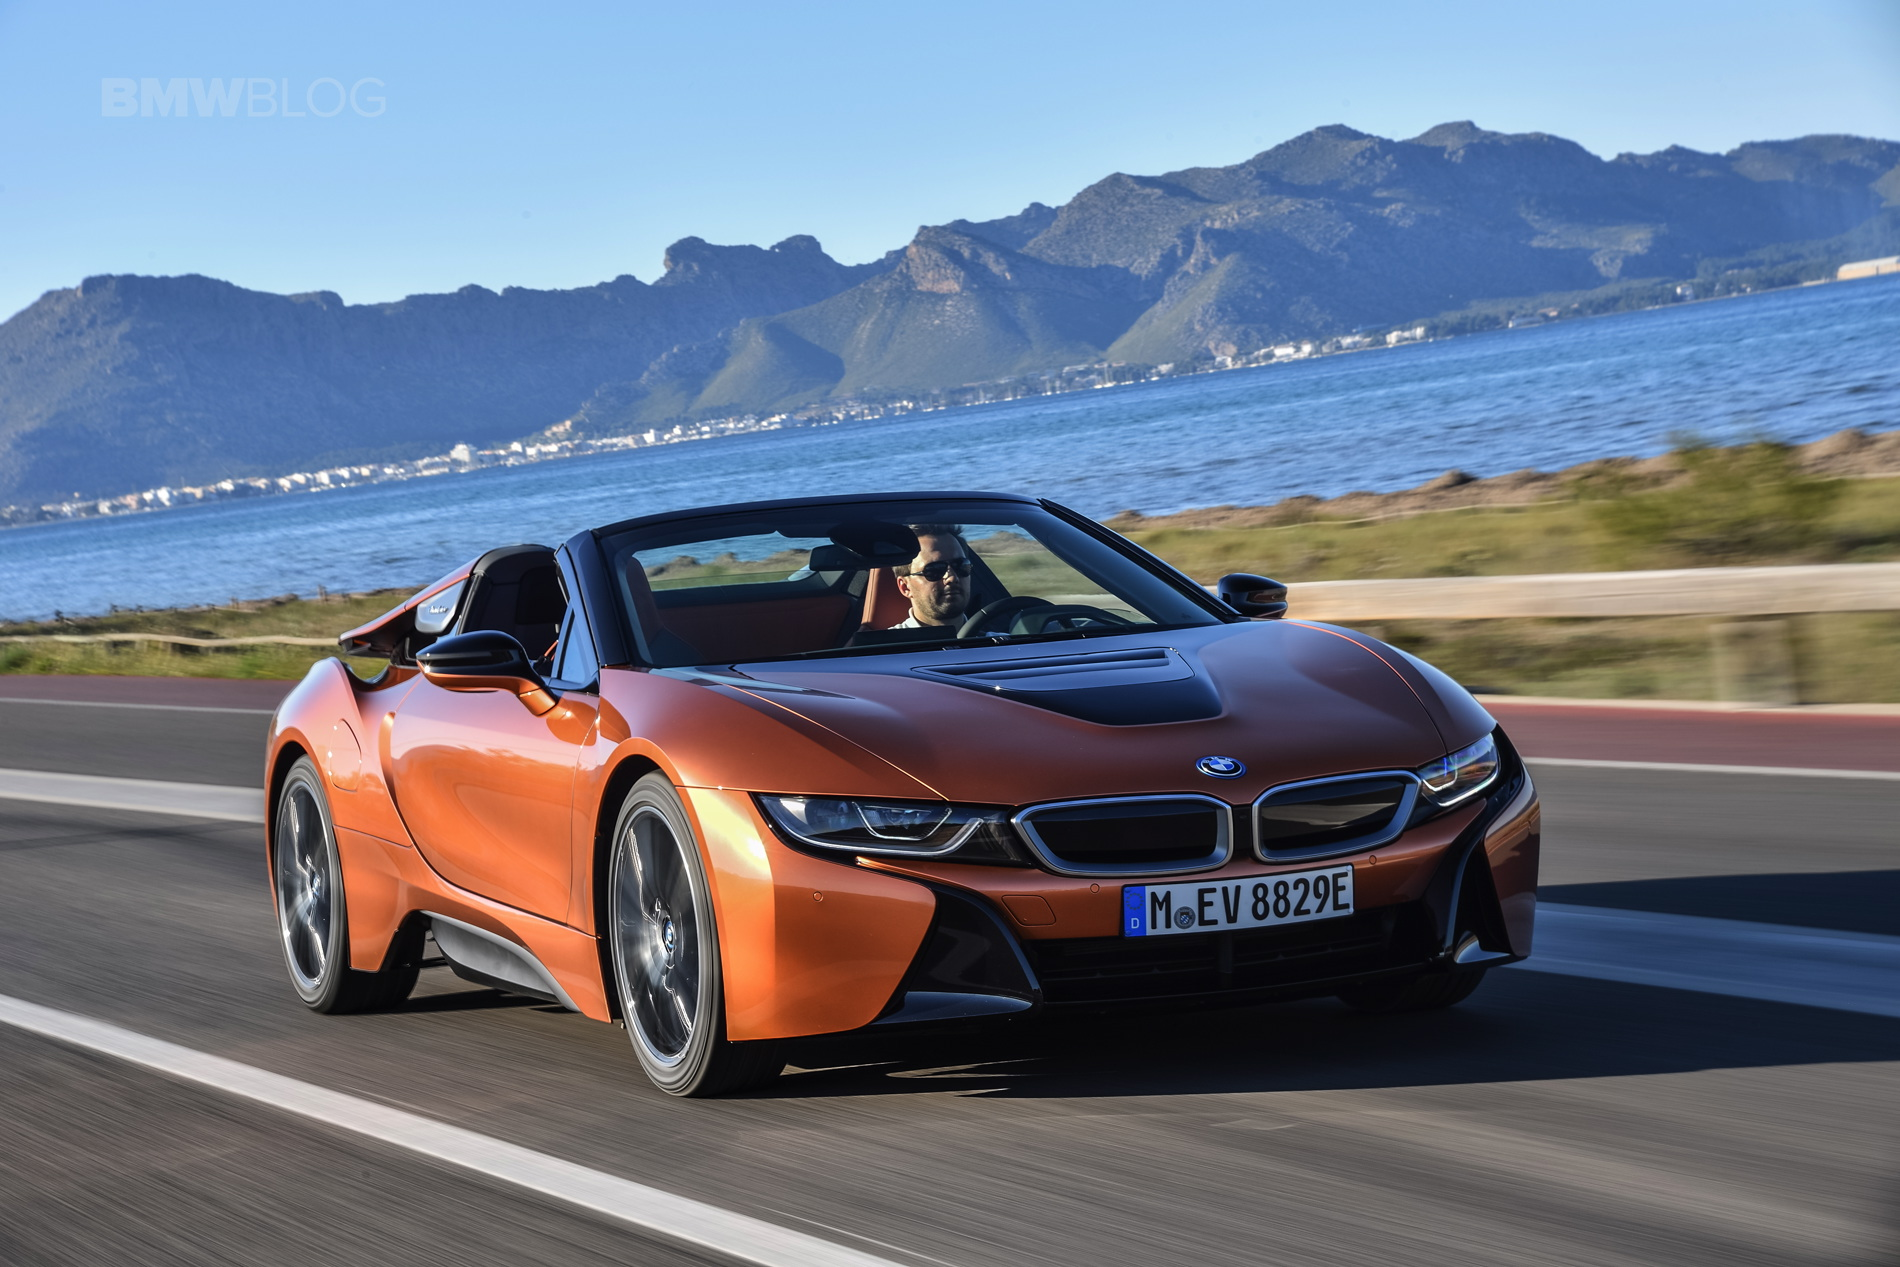 2018 BMW i8 Roadster test drive 36